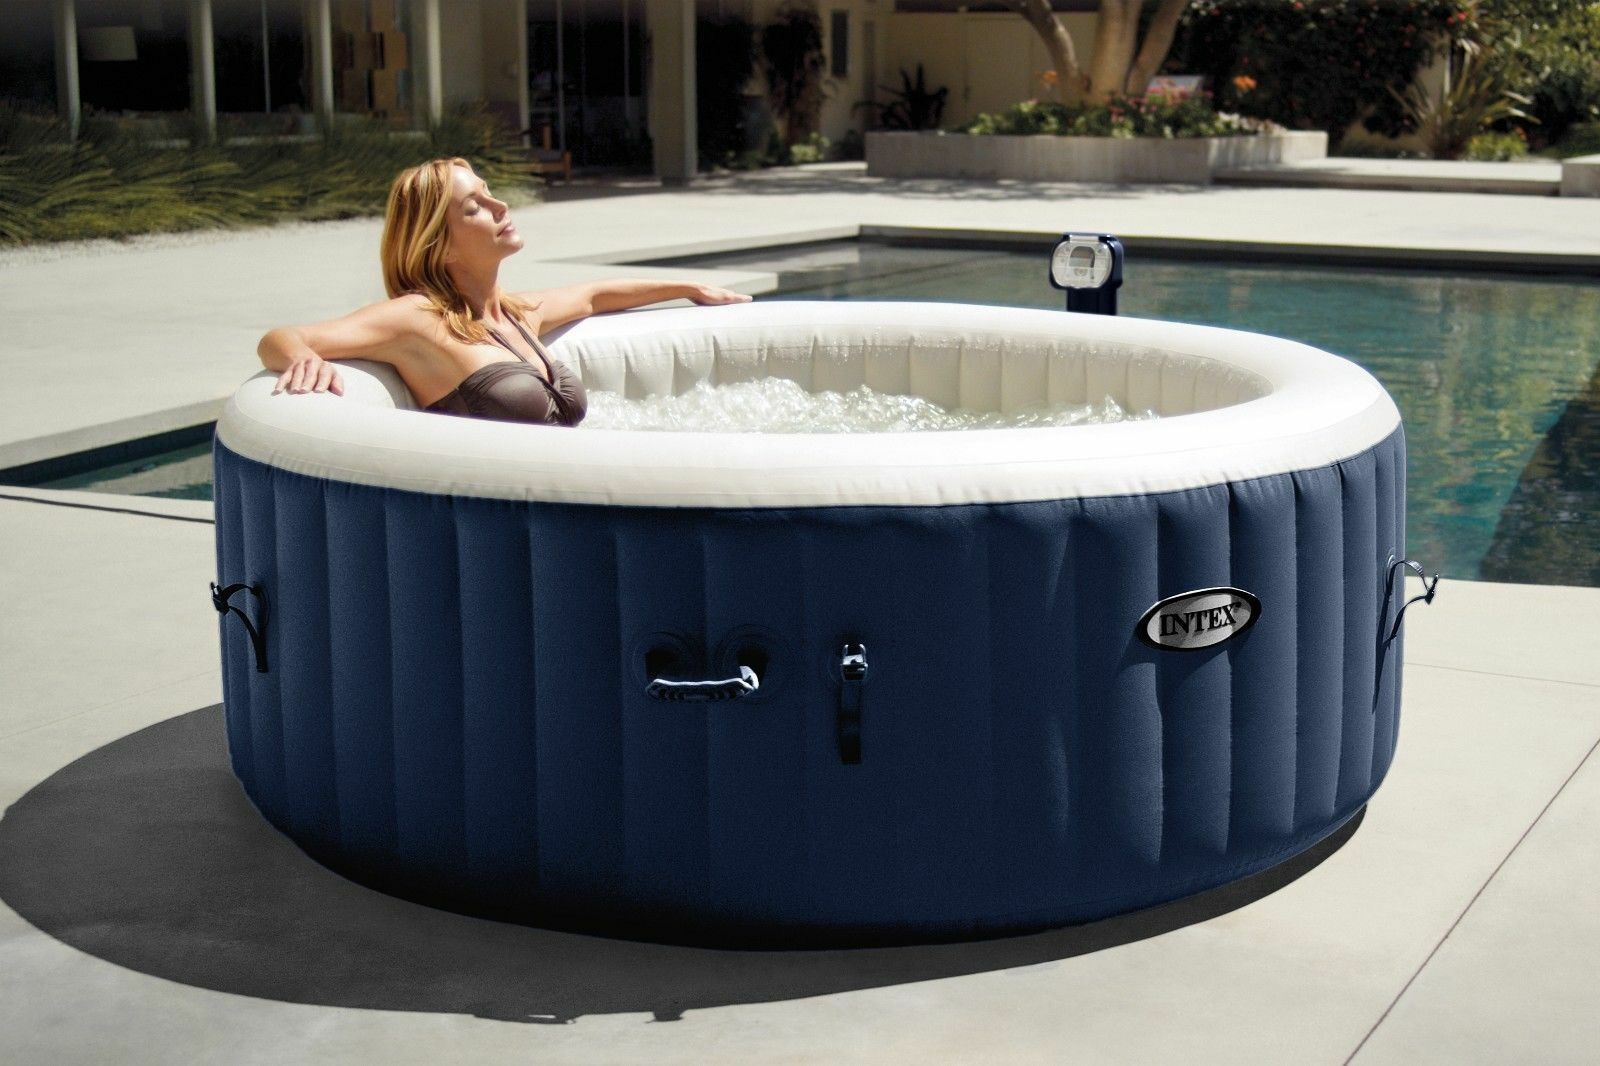 Intex Pure Spa 4 Person Inflatable Portable Heated Bubble Hot Tub ...